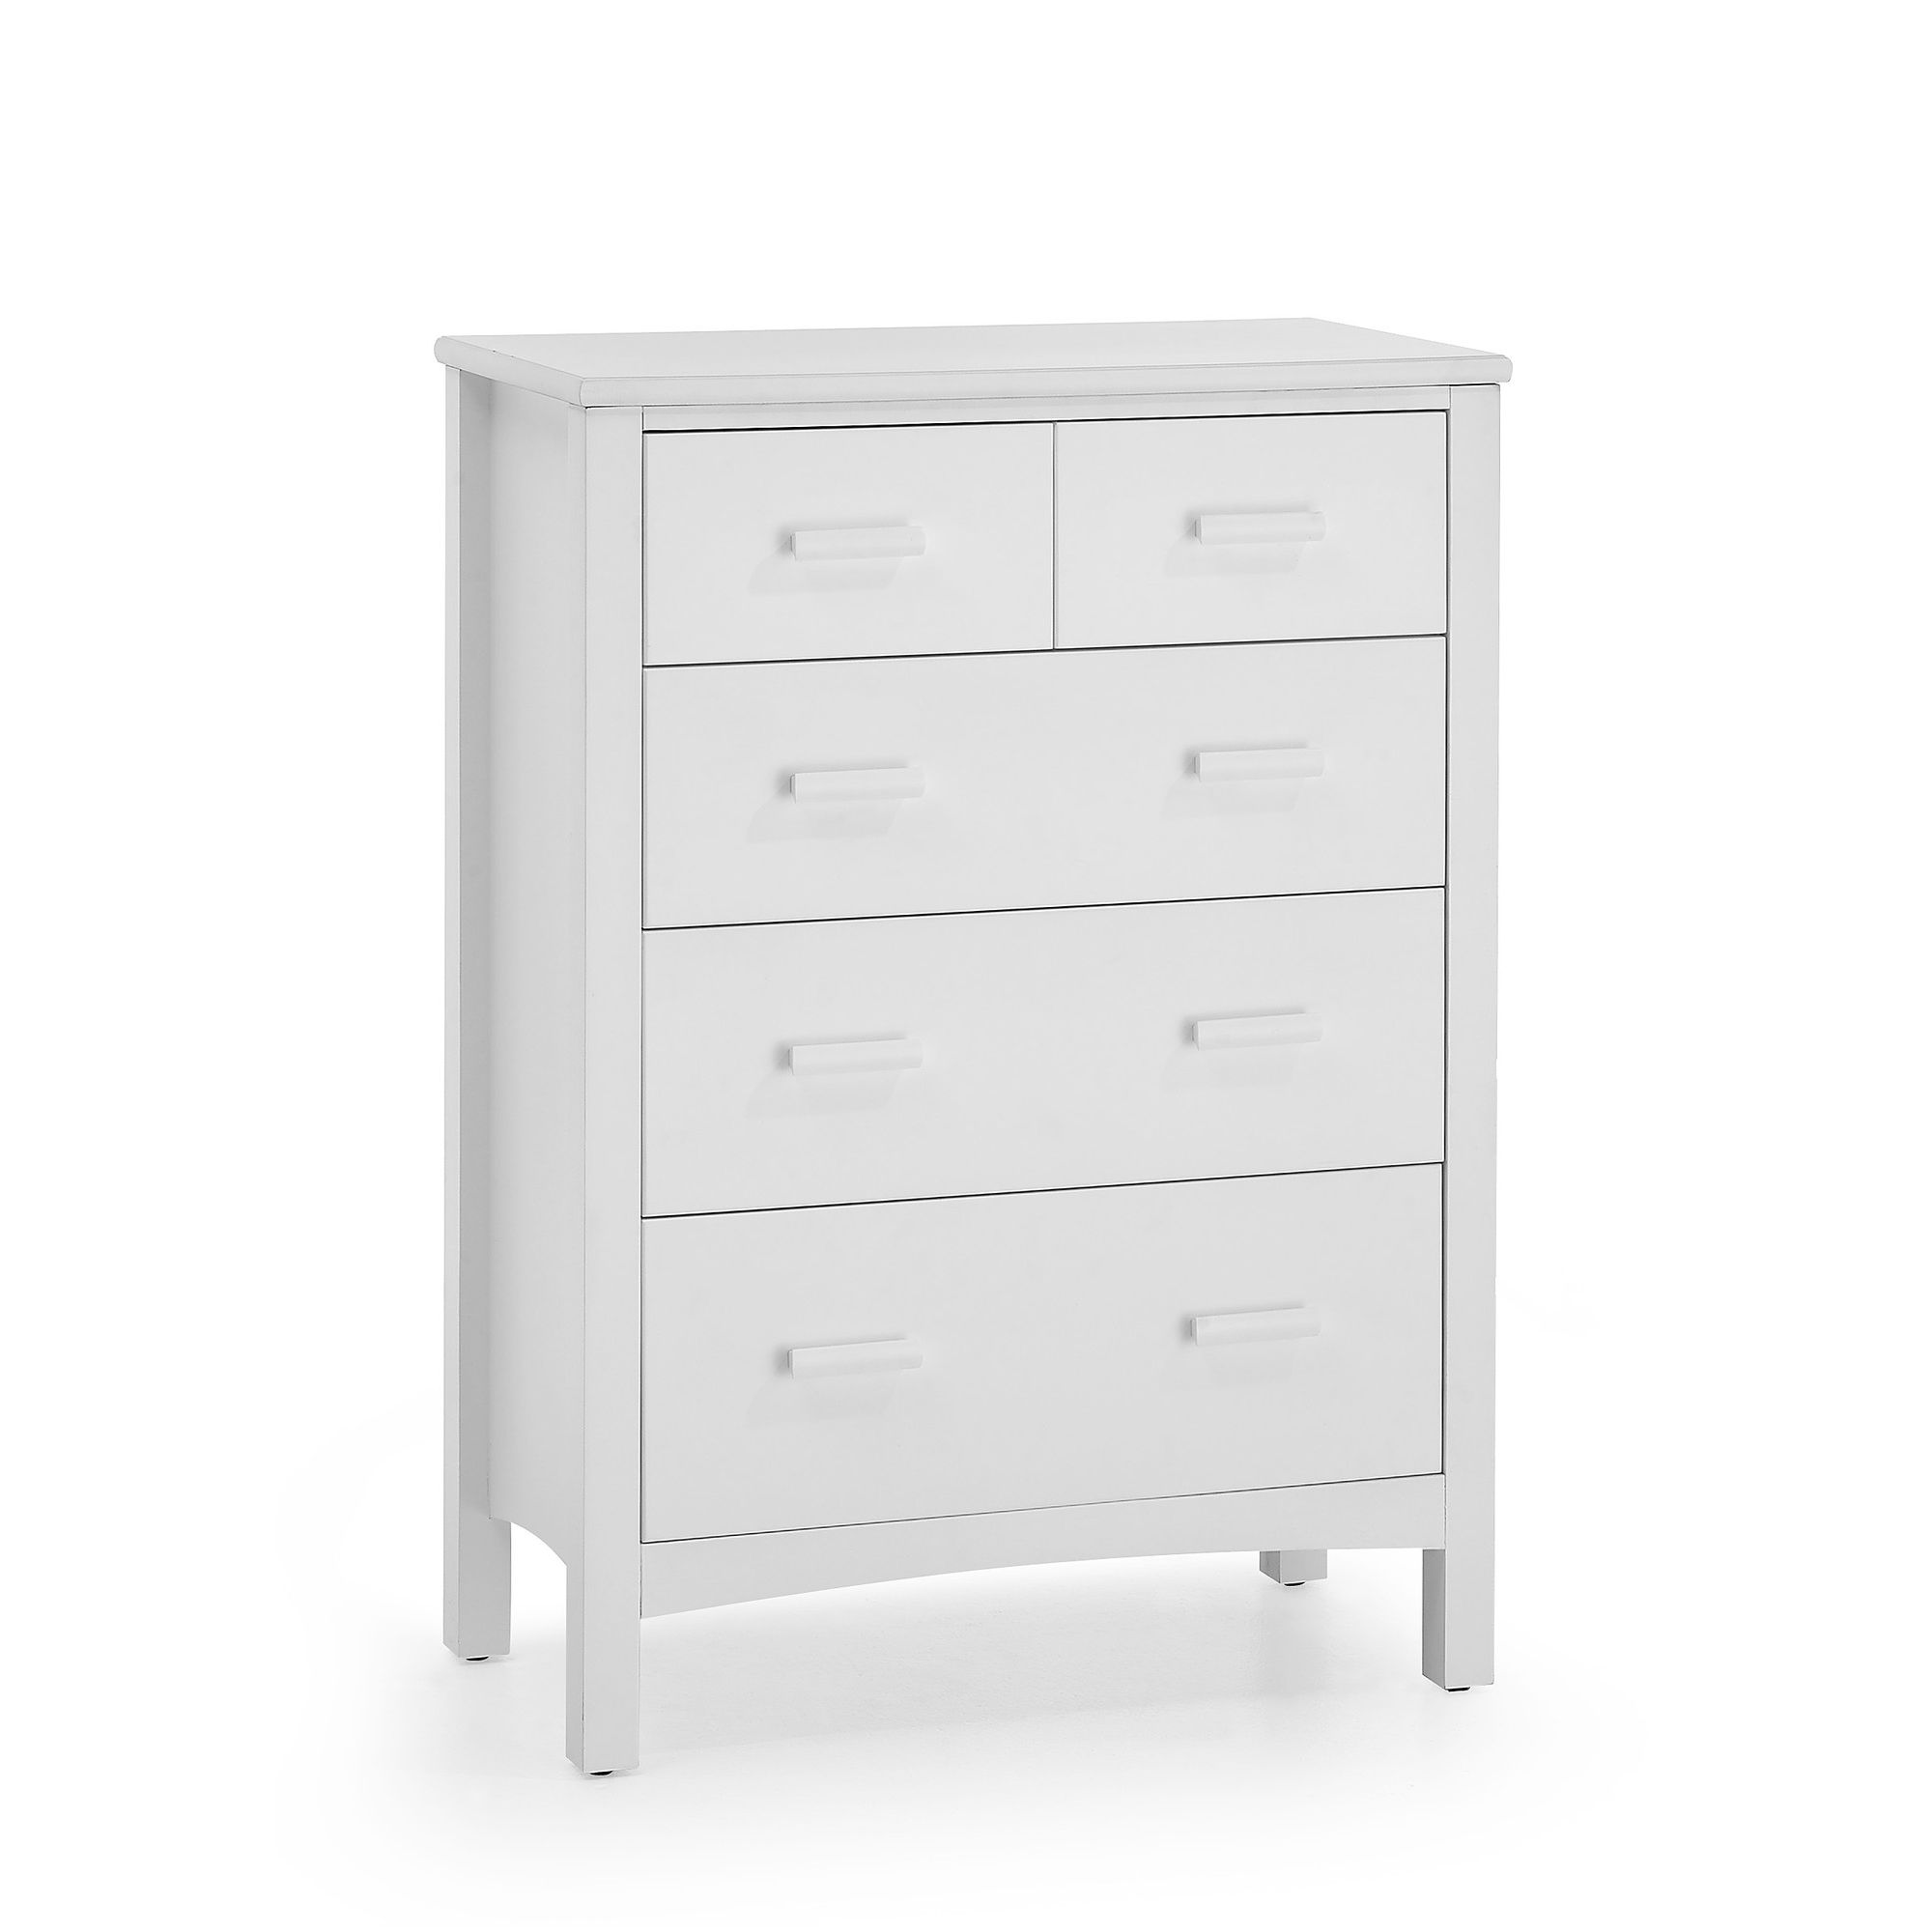 Serene Furnishings Eleanor 5 Drawer Chest - Opal White at Tescos Direct